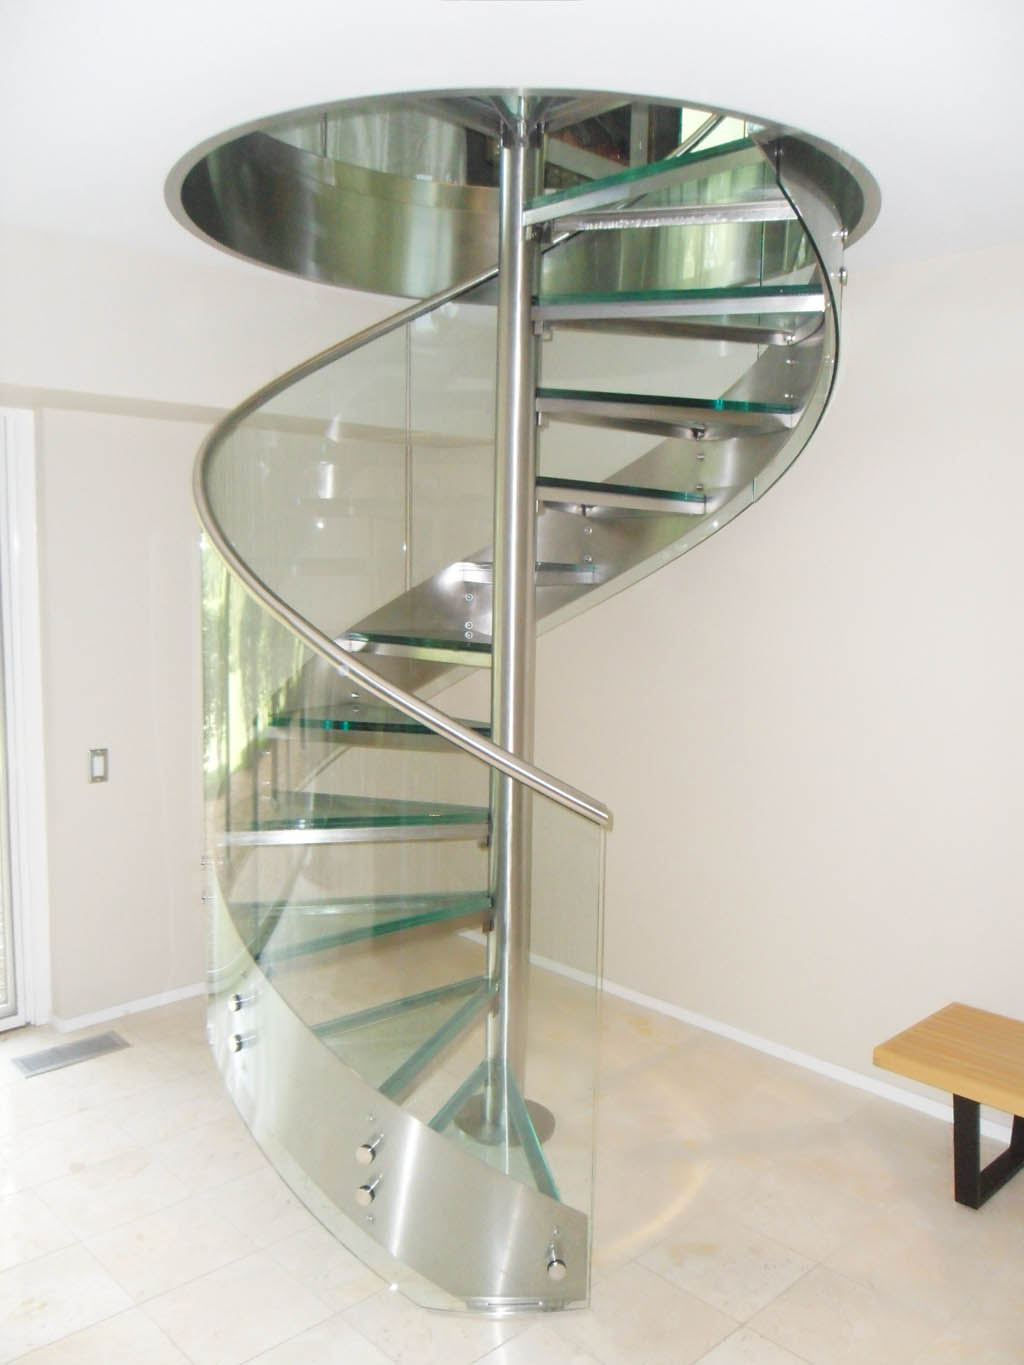 Stainless Steel and Glass Spiral Staircase